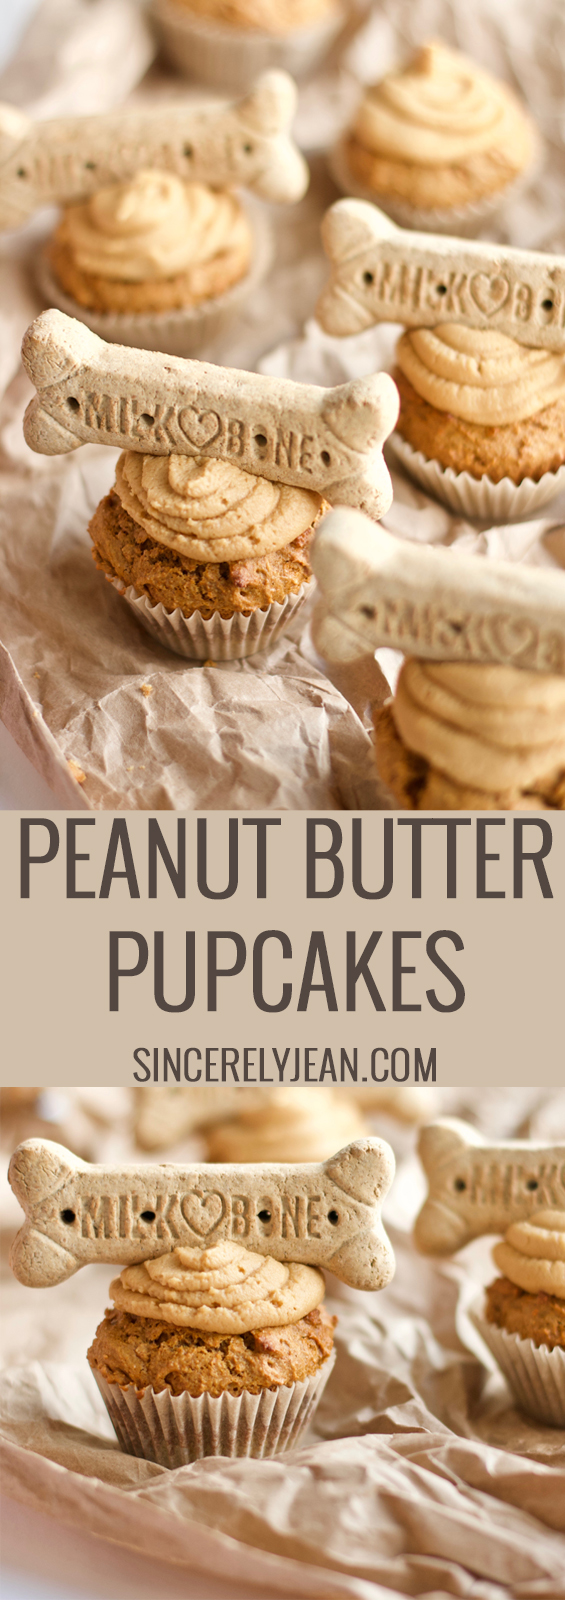 Peanut Butter Pupcakes are fun cupcakes to make for your dog. It's an easy recipe for a dogs birthday, he will love the dessert.